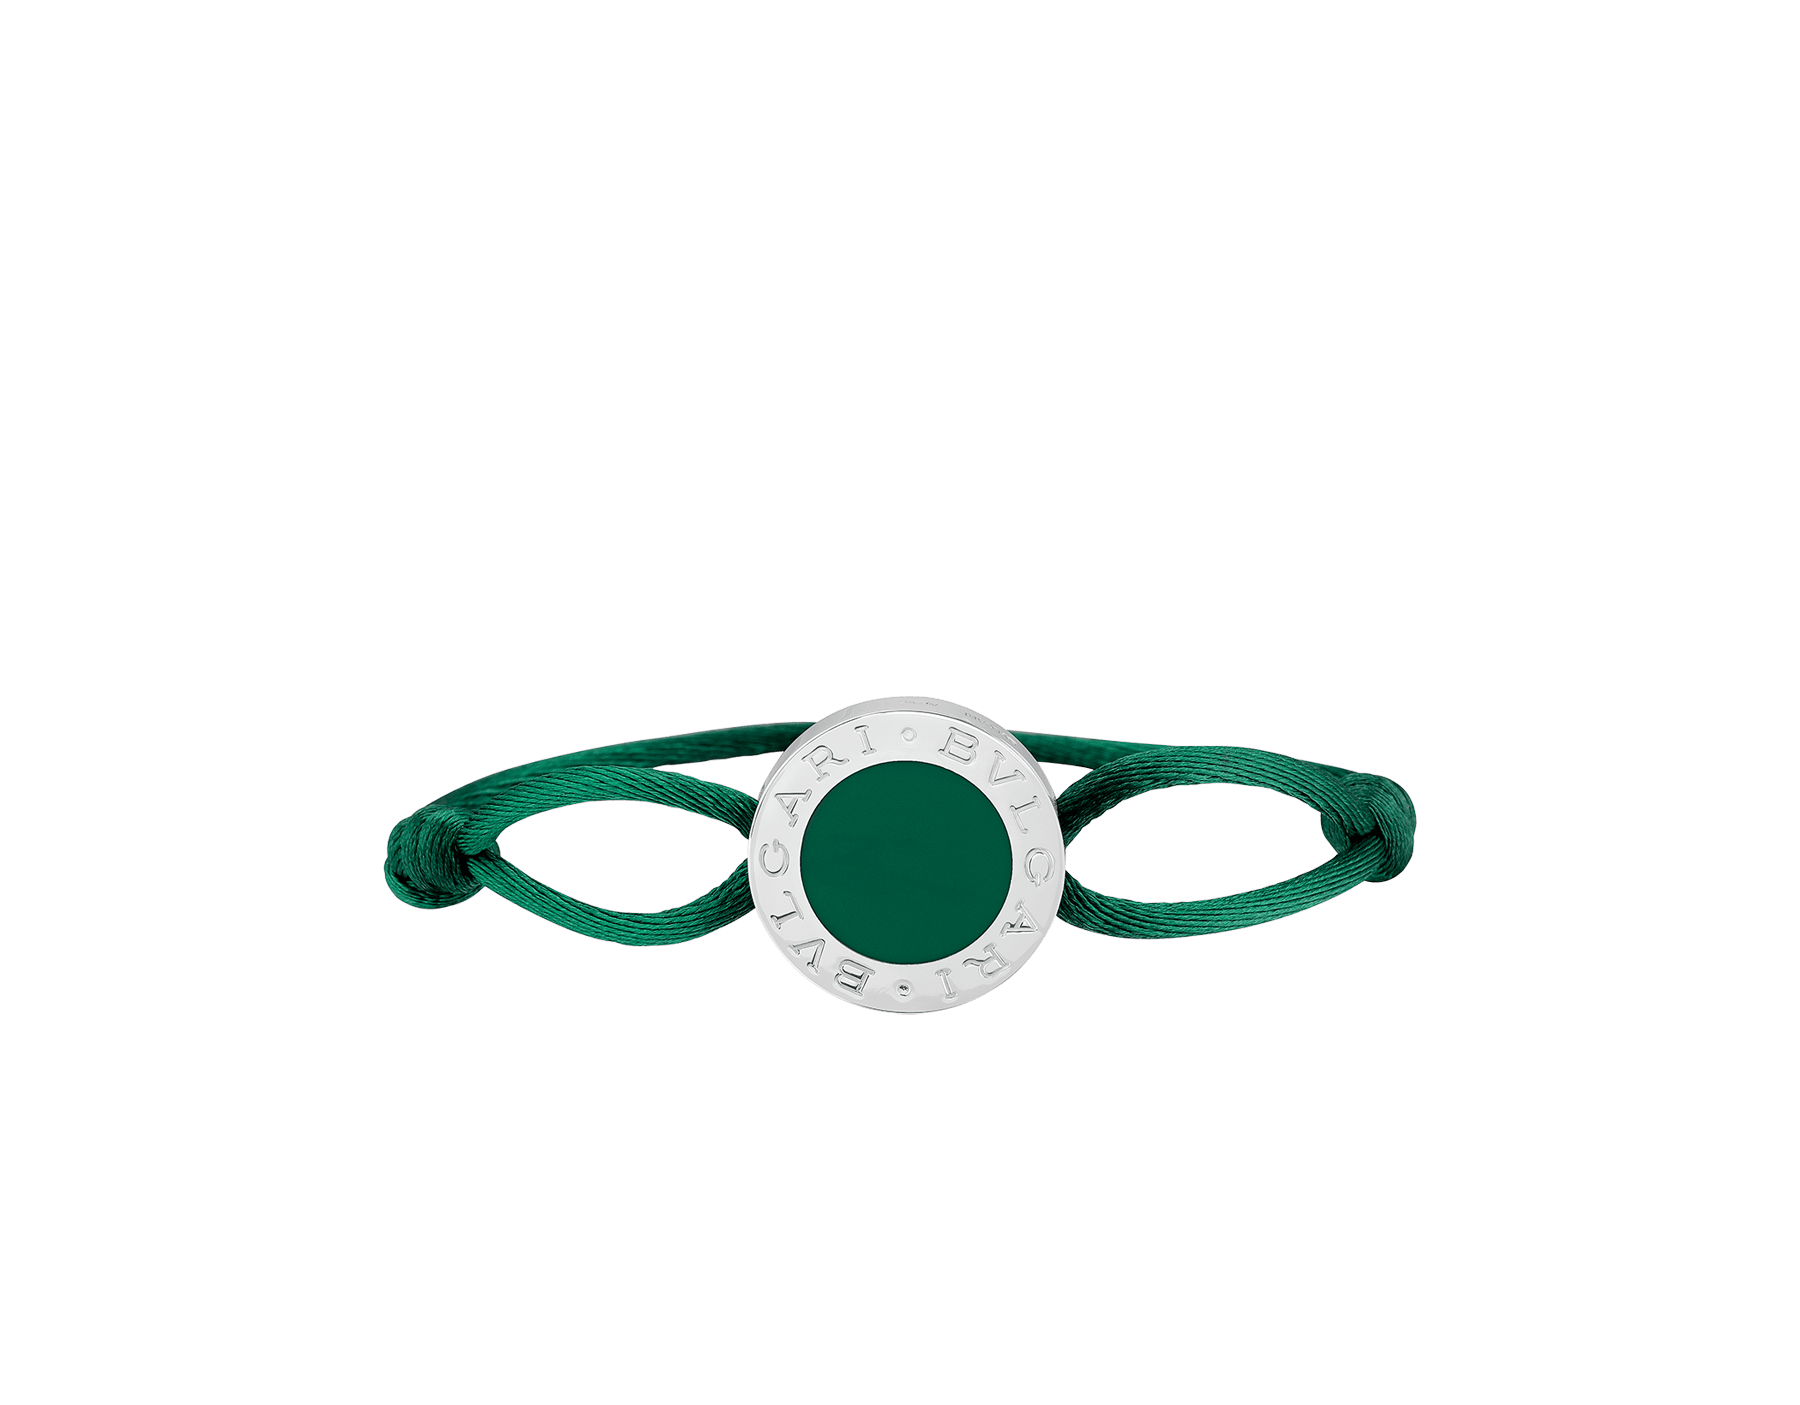 """BVLGARI BVLGARI"" bracelet in emerald green fabric with an iconic logo décor in sterling silver and black enamel. BRACLT-LUCKYUb image 1"